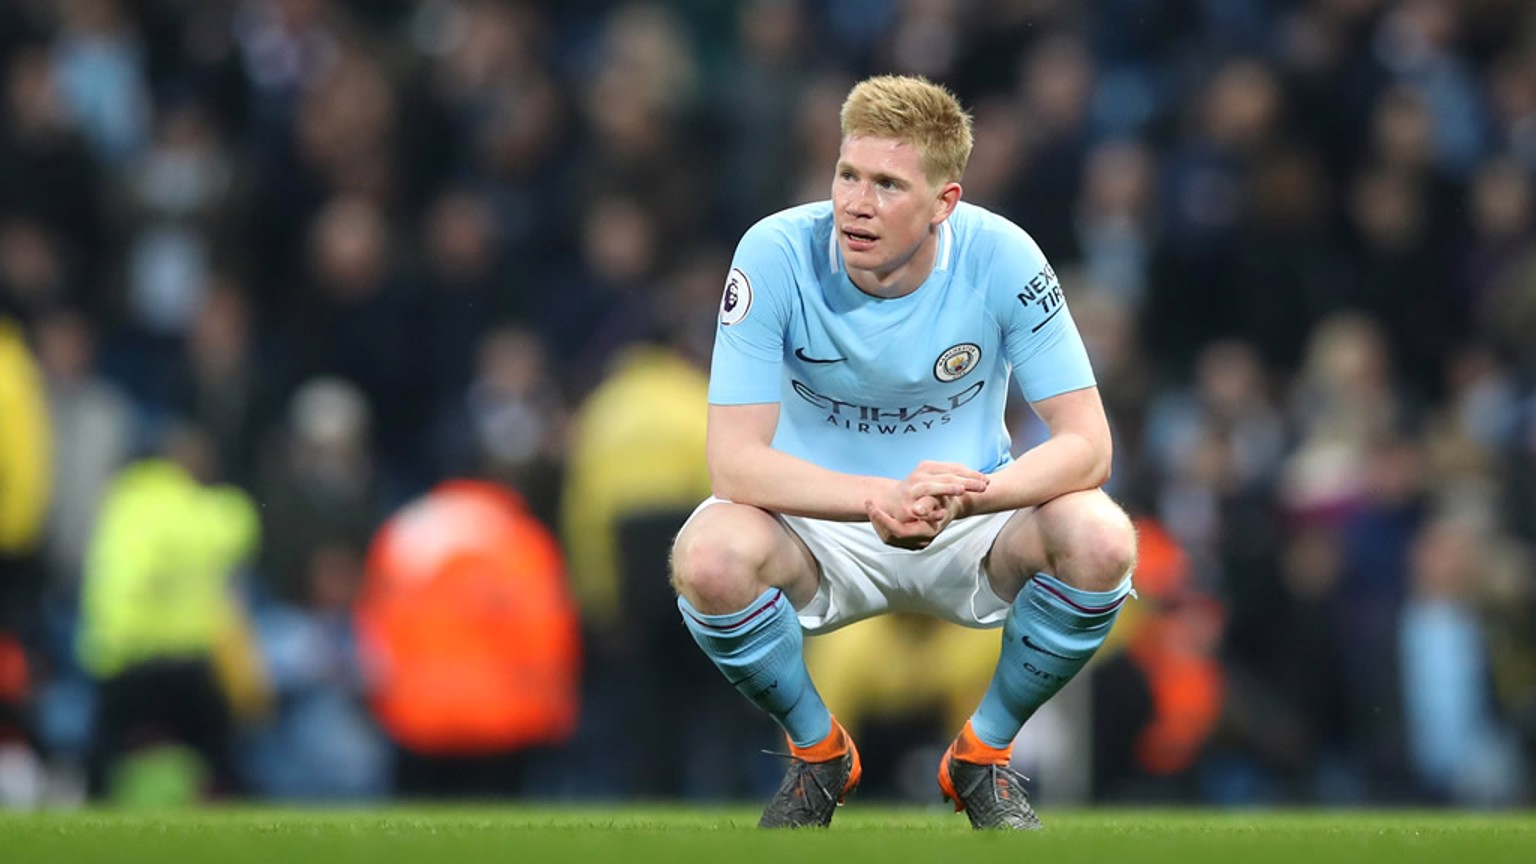 DISAPPOINTED: KDB takes a minute